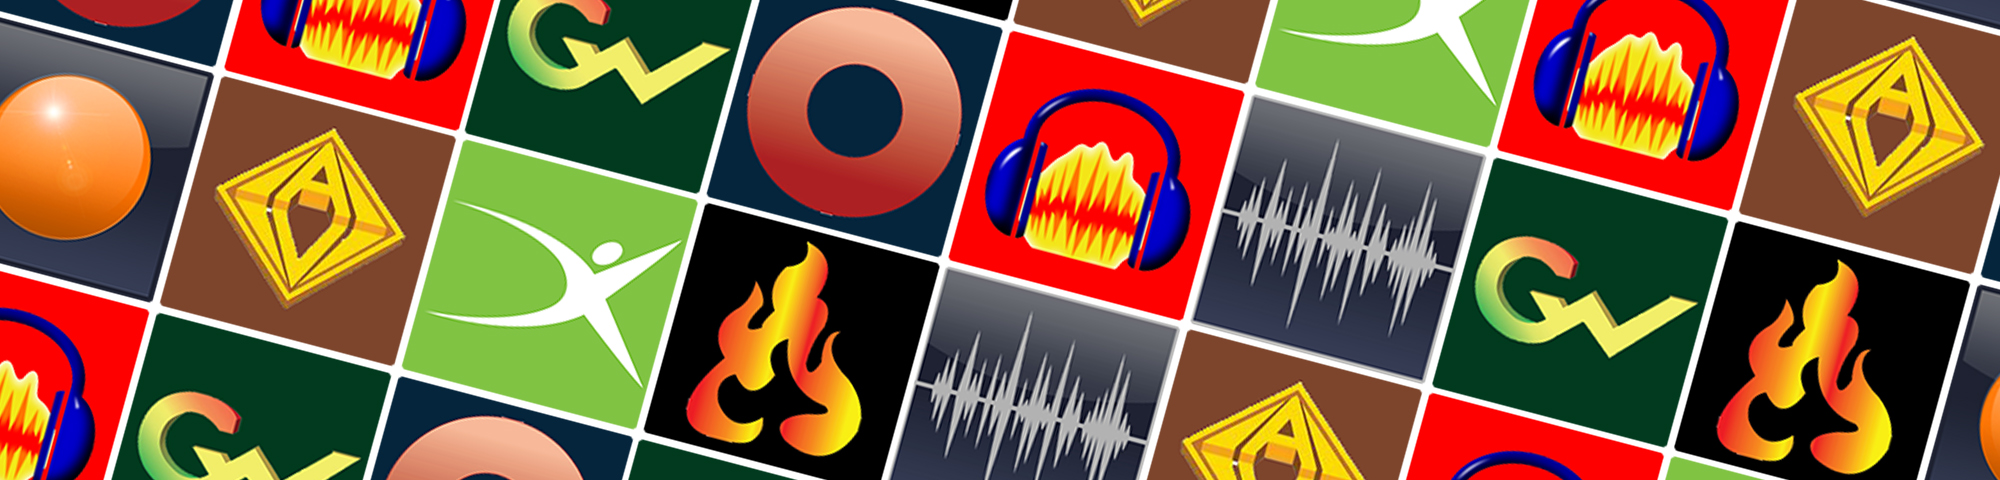 Best Voice Recording Software 2019 - Voice Recorders for PC